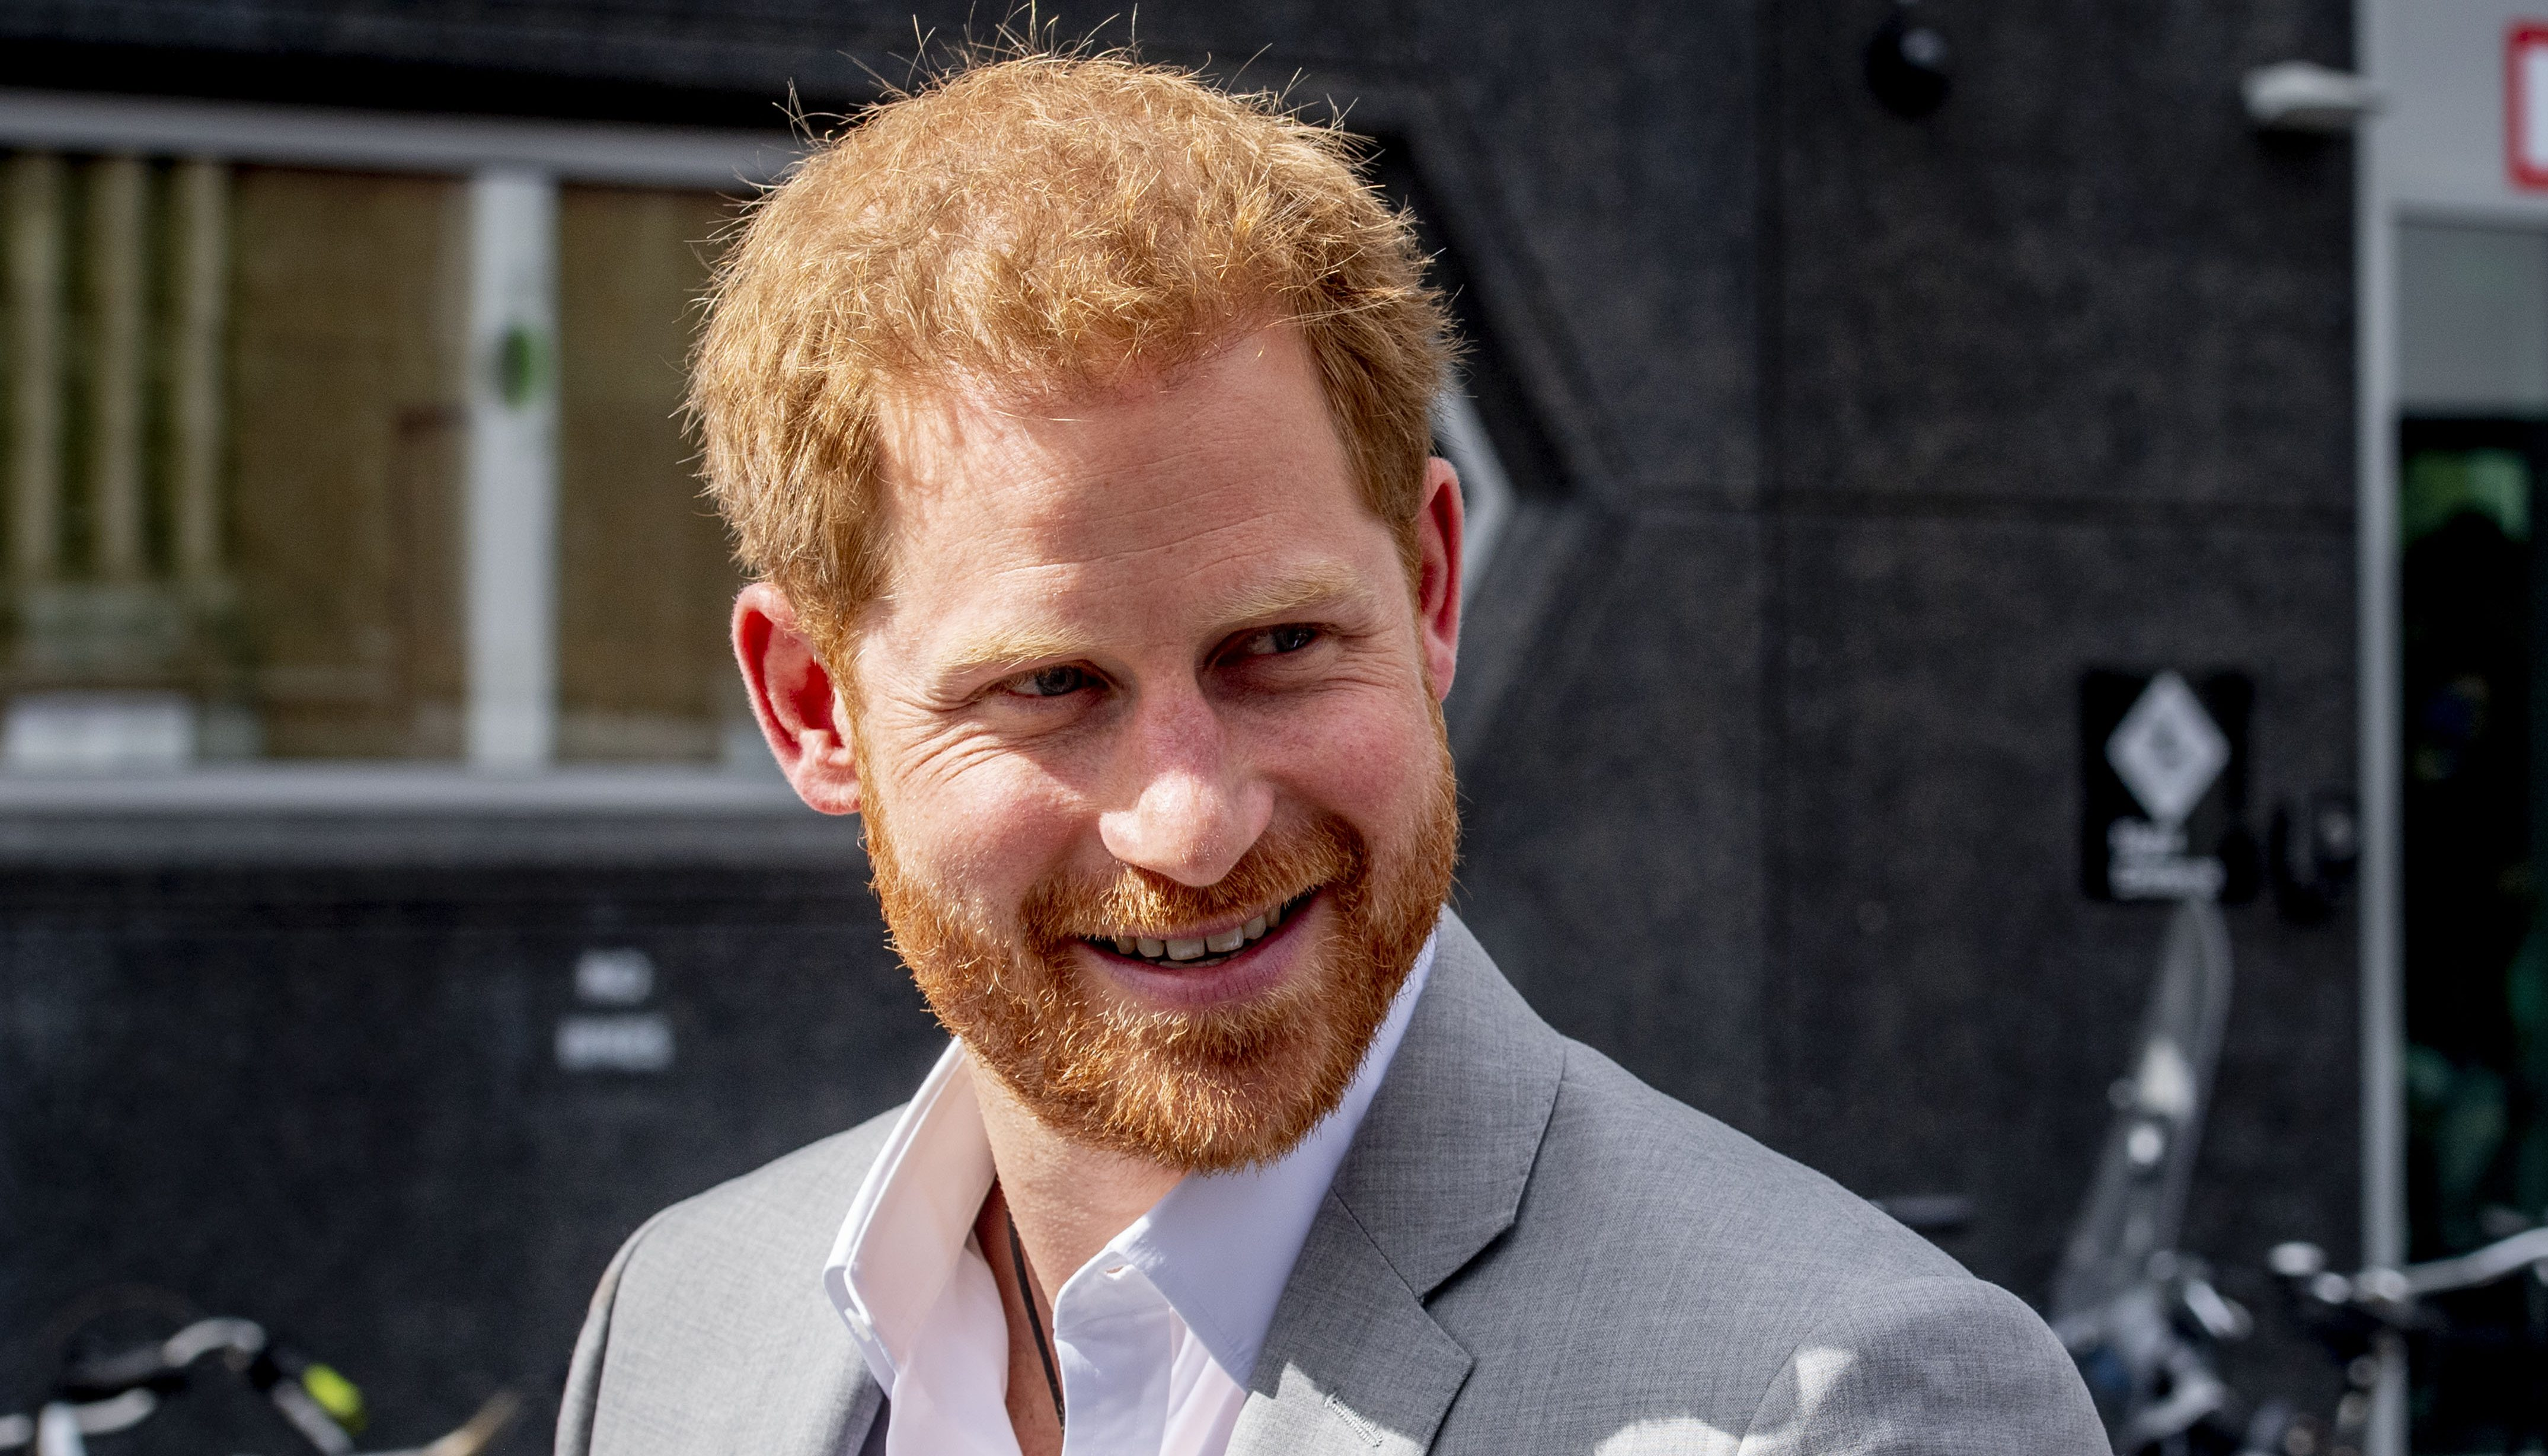 Prince Harry teams up with Oprah Winfrey for mental health TV series